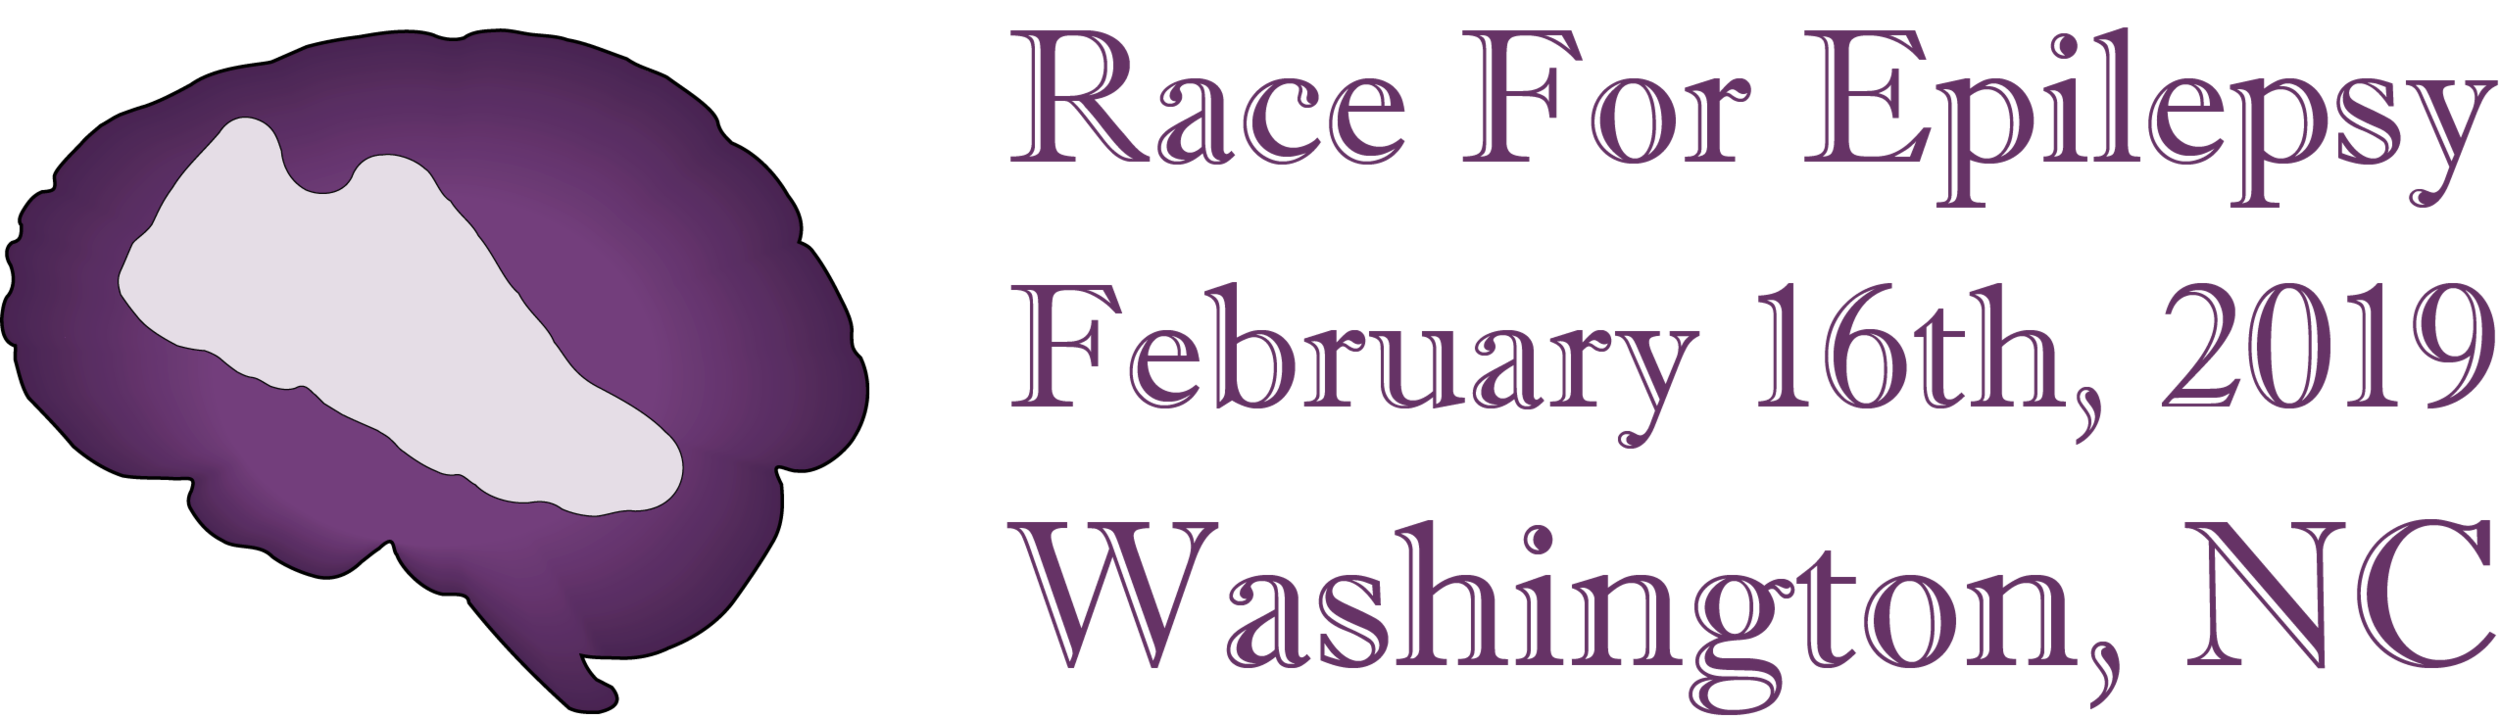 Race For Epilepsy 2019.png